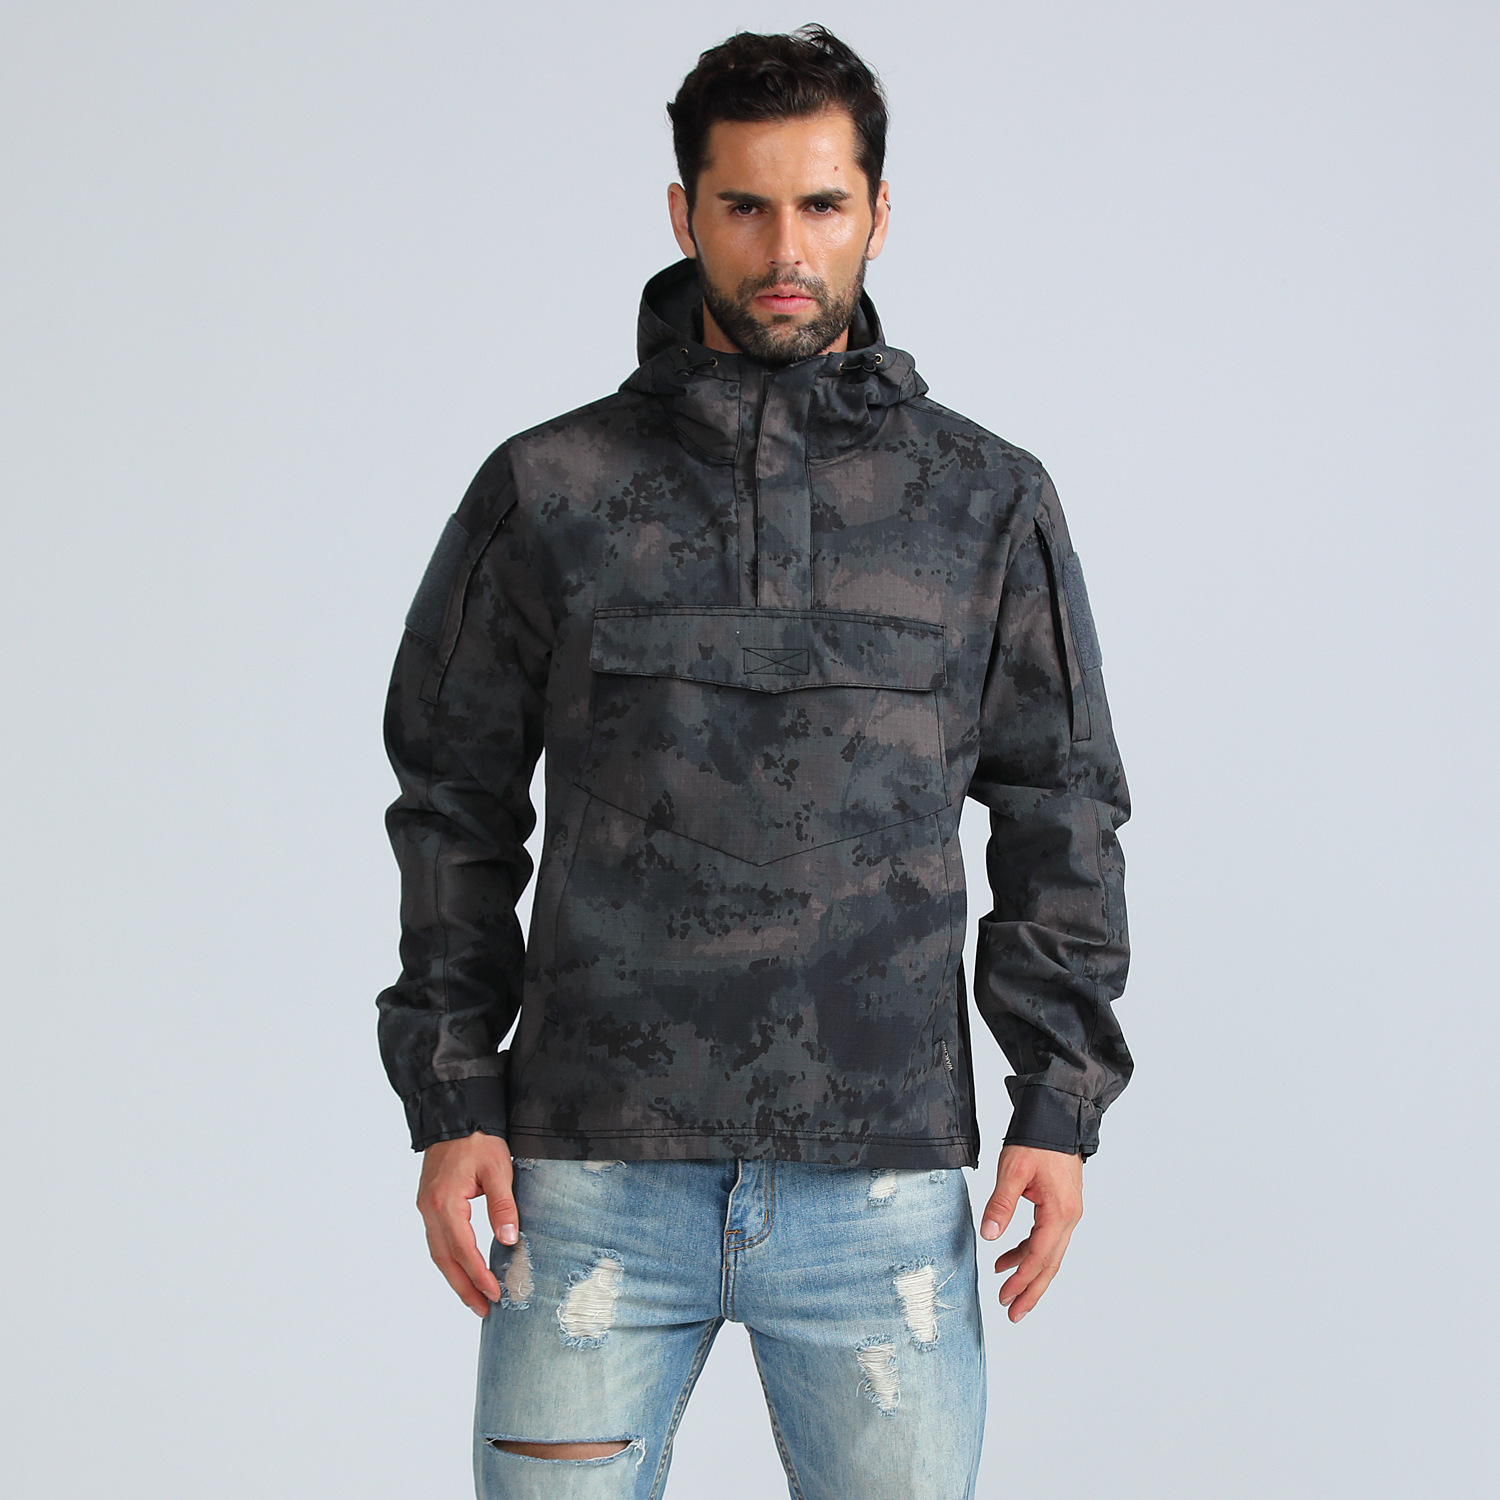 Mens Camo Tactical Pullover Coat With Reflective Stripe Outdoor Climbing Hunting Training Quick Dry Breathable Military Jacket